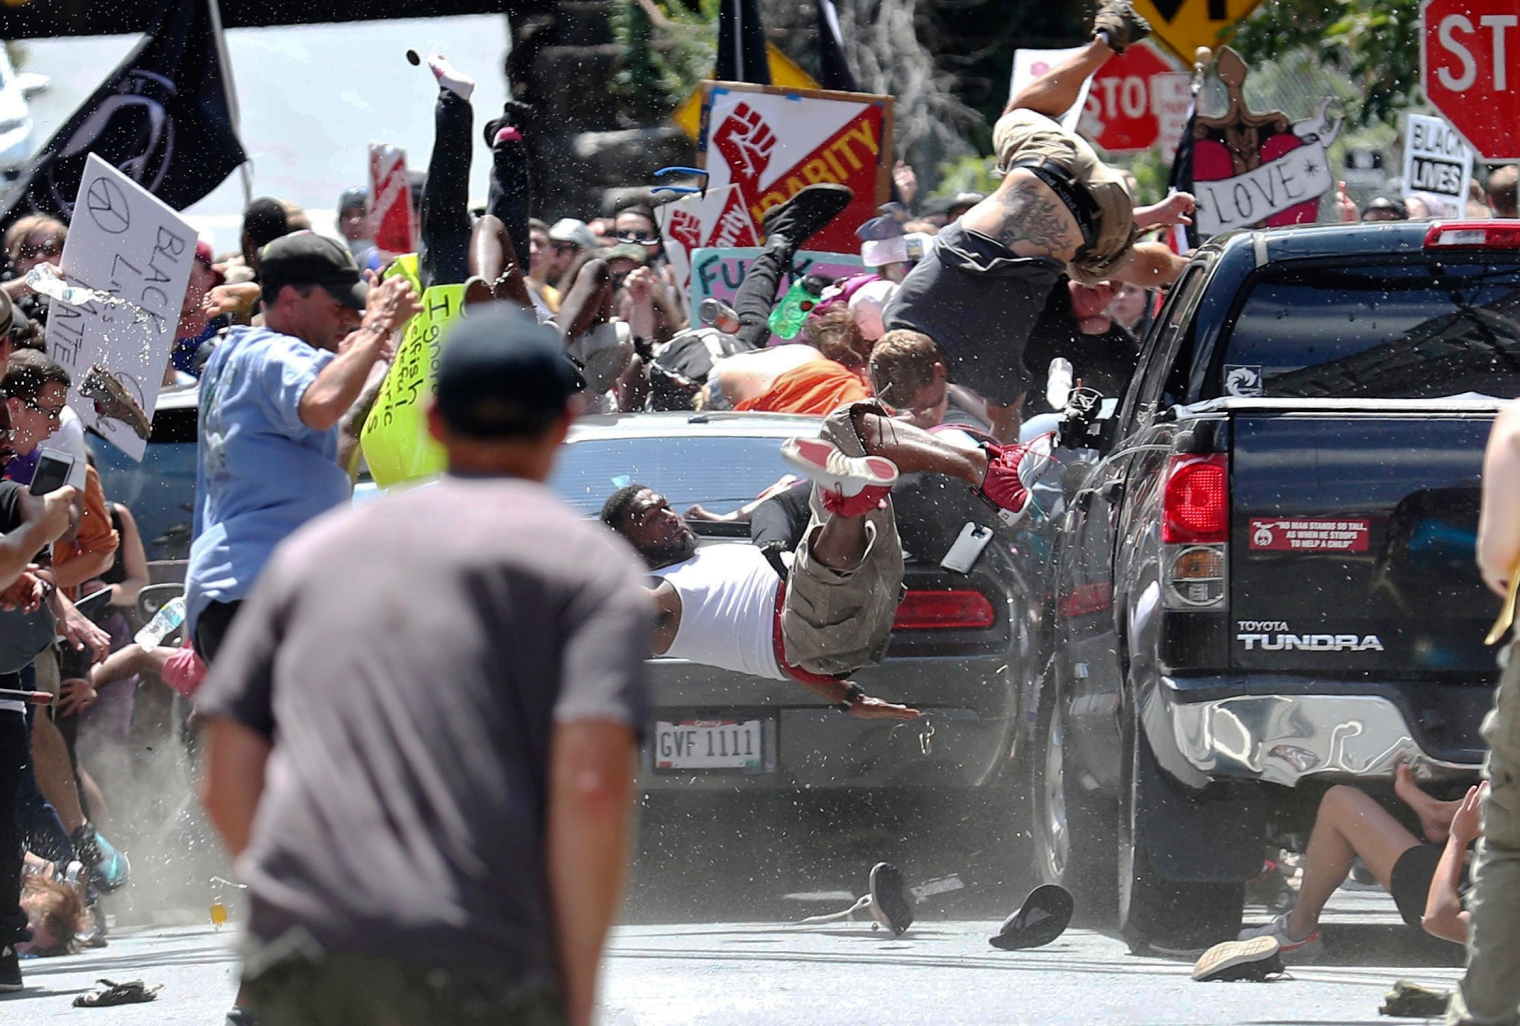 People fly into the air as a vehicle drives into a group of protesters demonstrating against a white nationalist rally